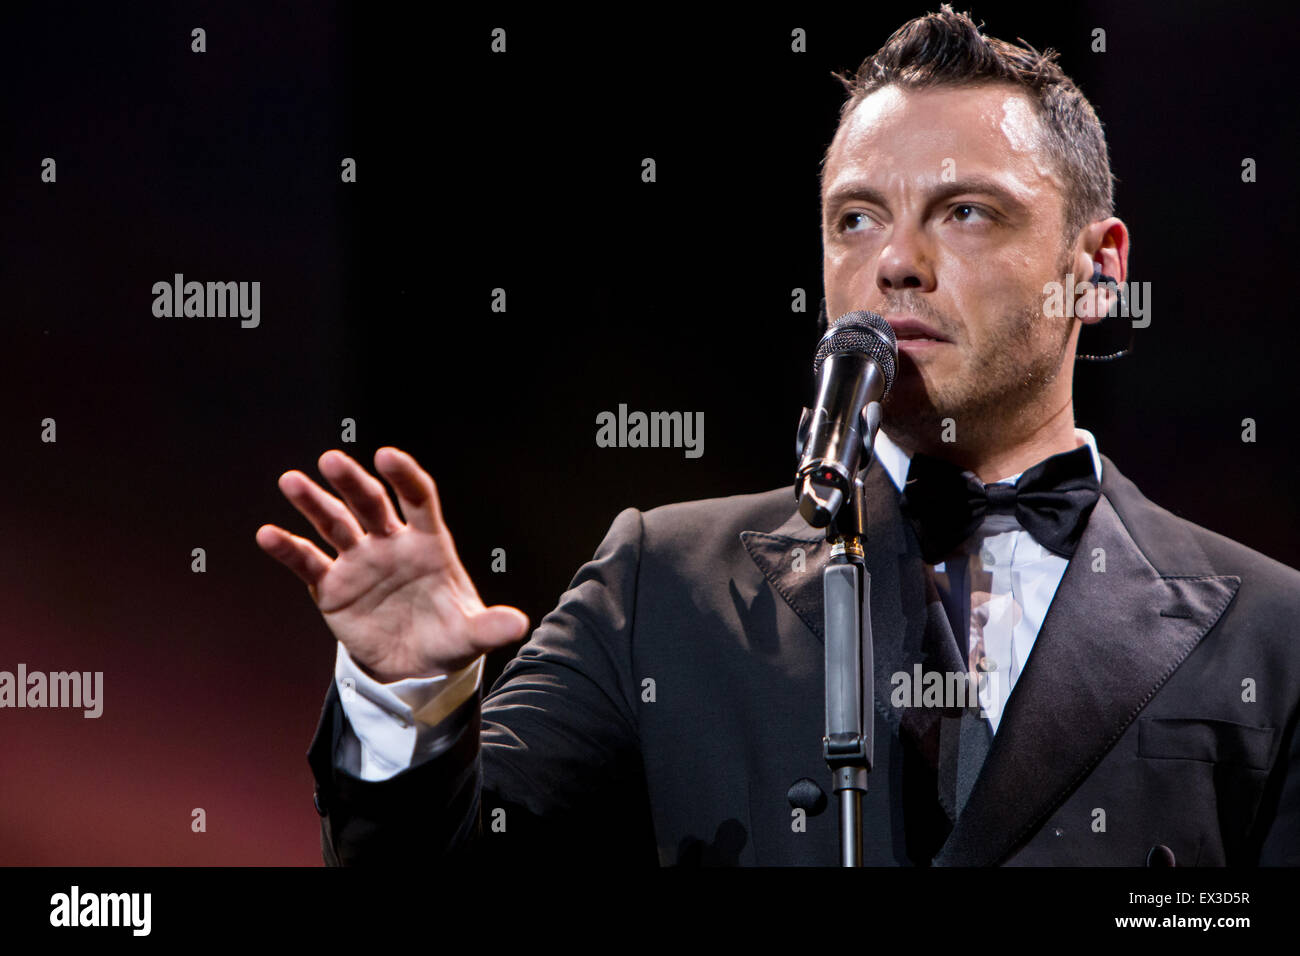 mailand italien 5 juli 2015 der italienische s nger und songwriter tiziano ferro f hrt live. Black Bedroom Furniture Sets. Home Design Ideas